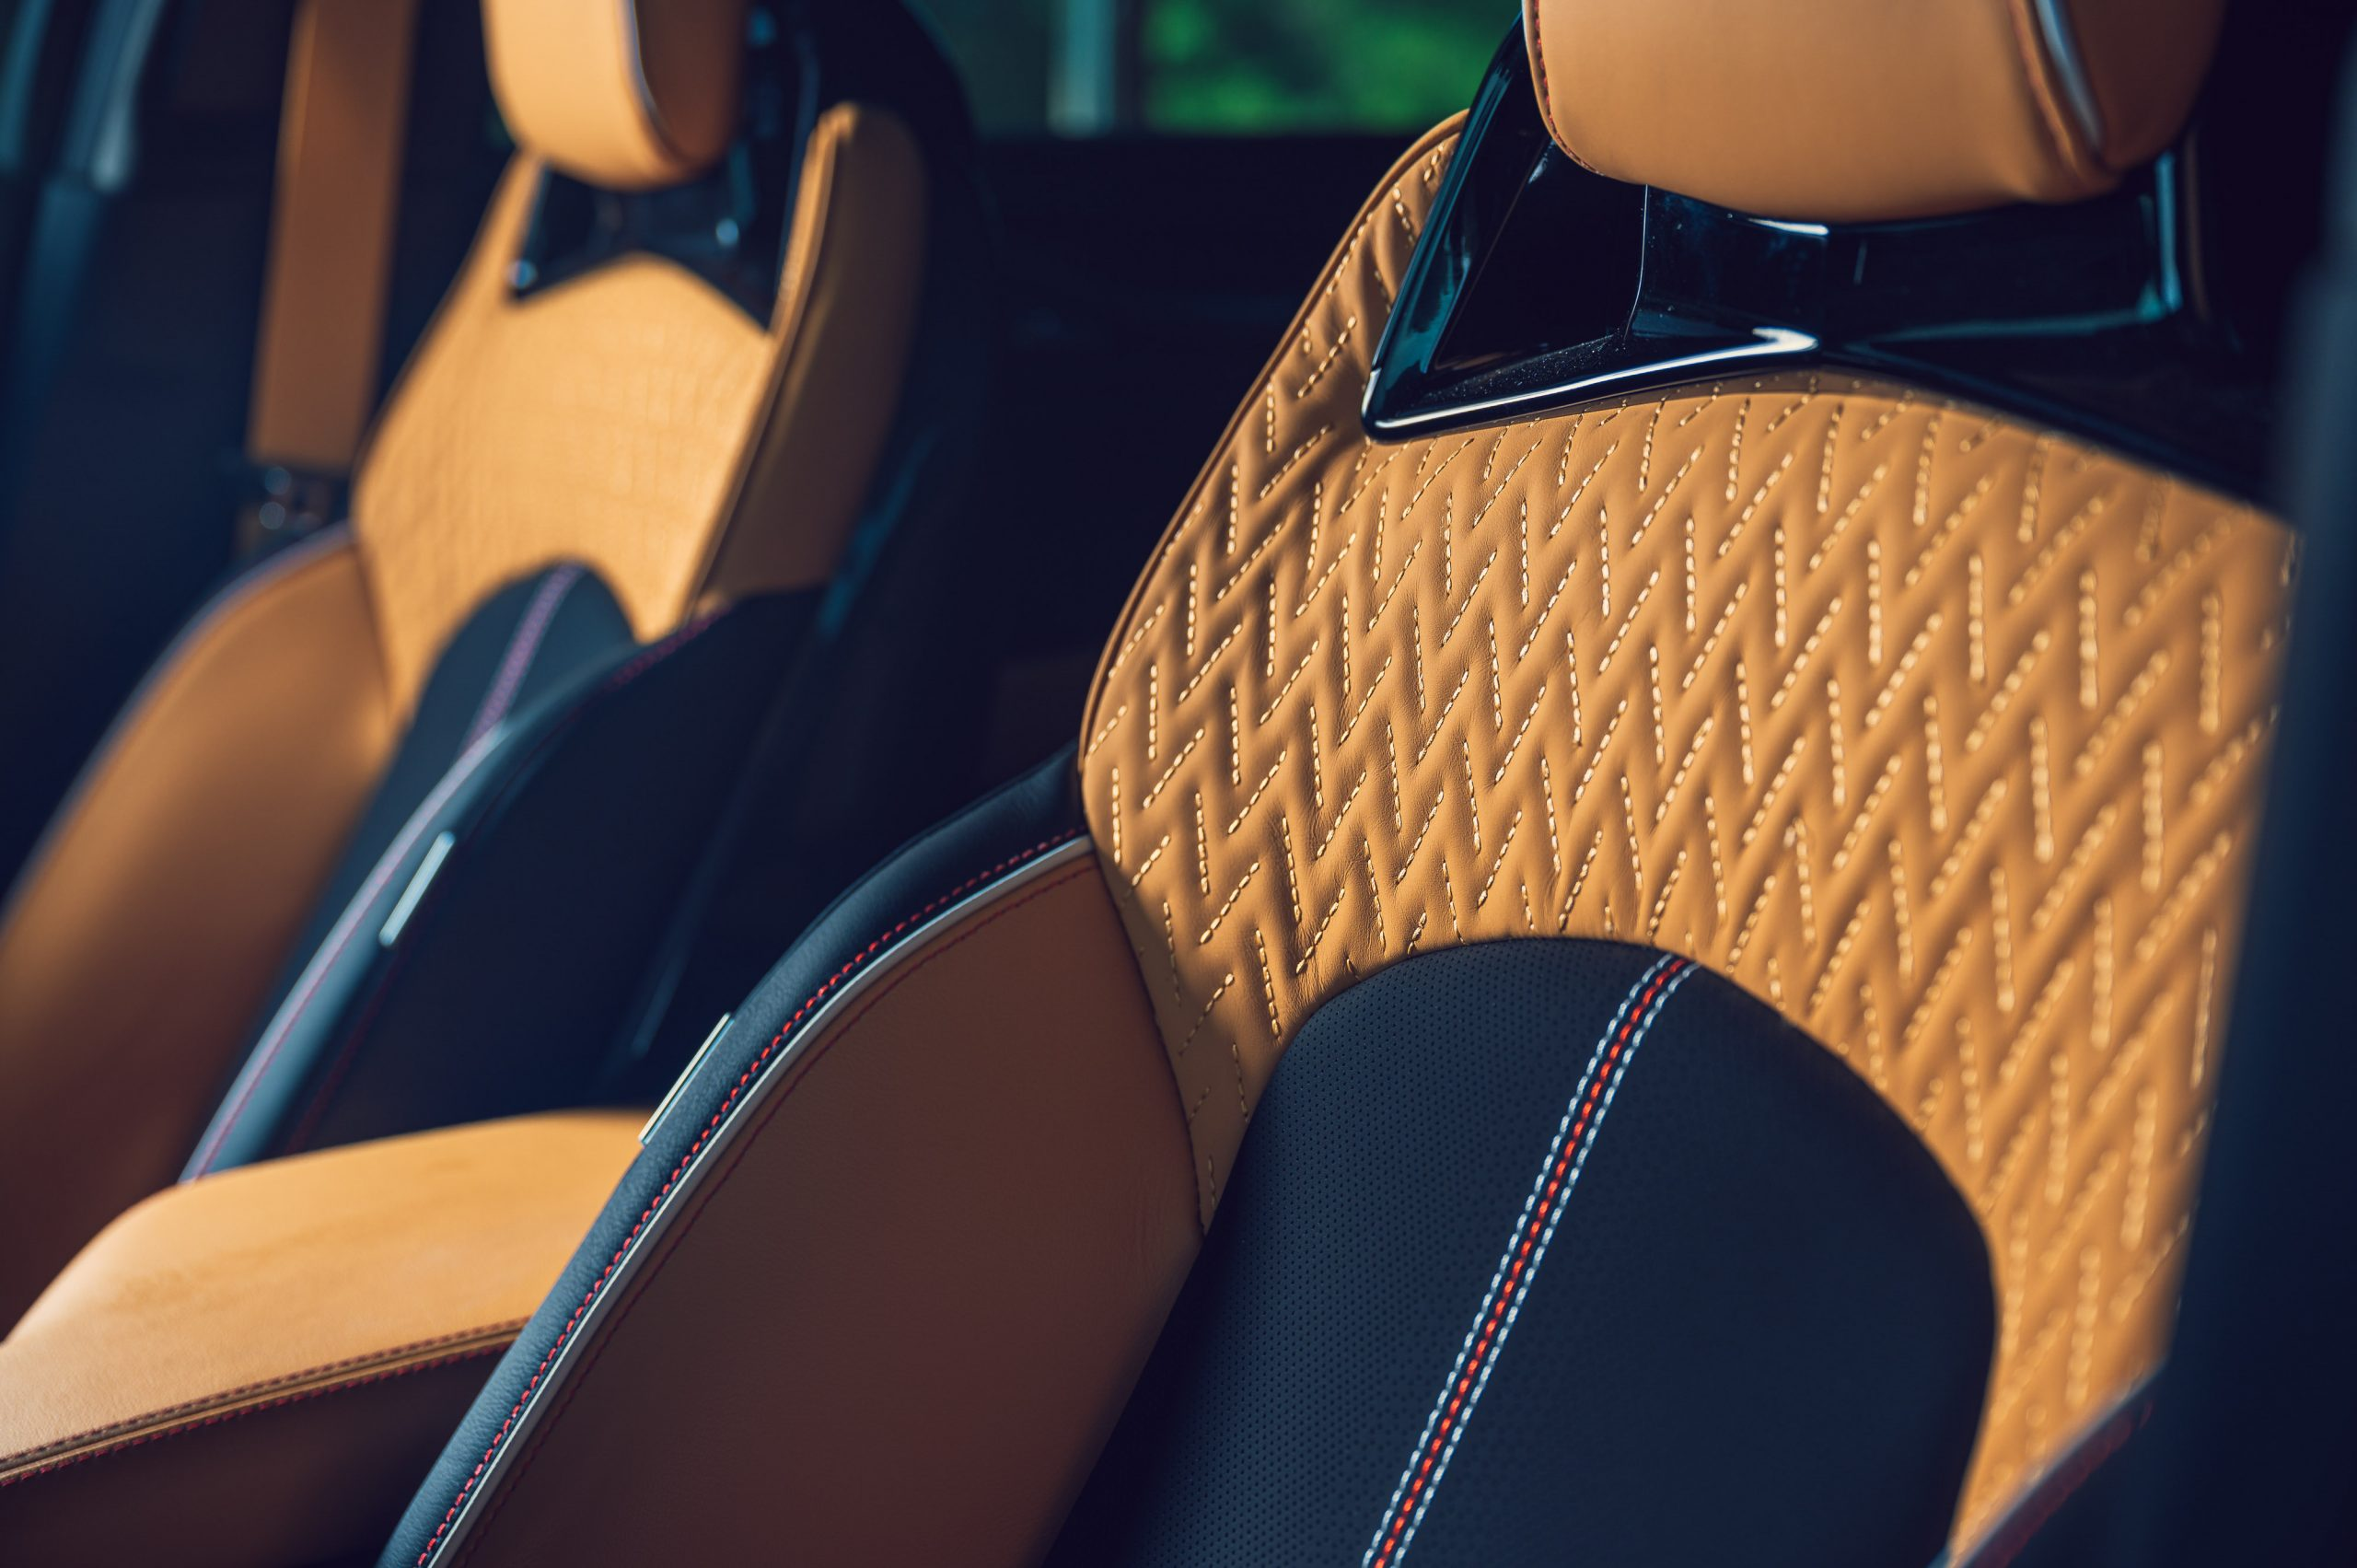 2022 Cadillac CT5-V Blackwing front seat detail